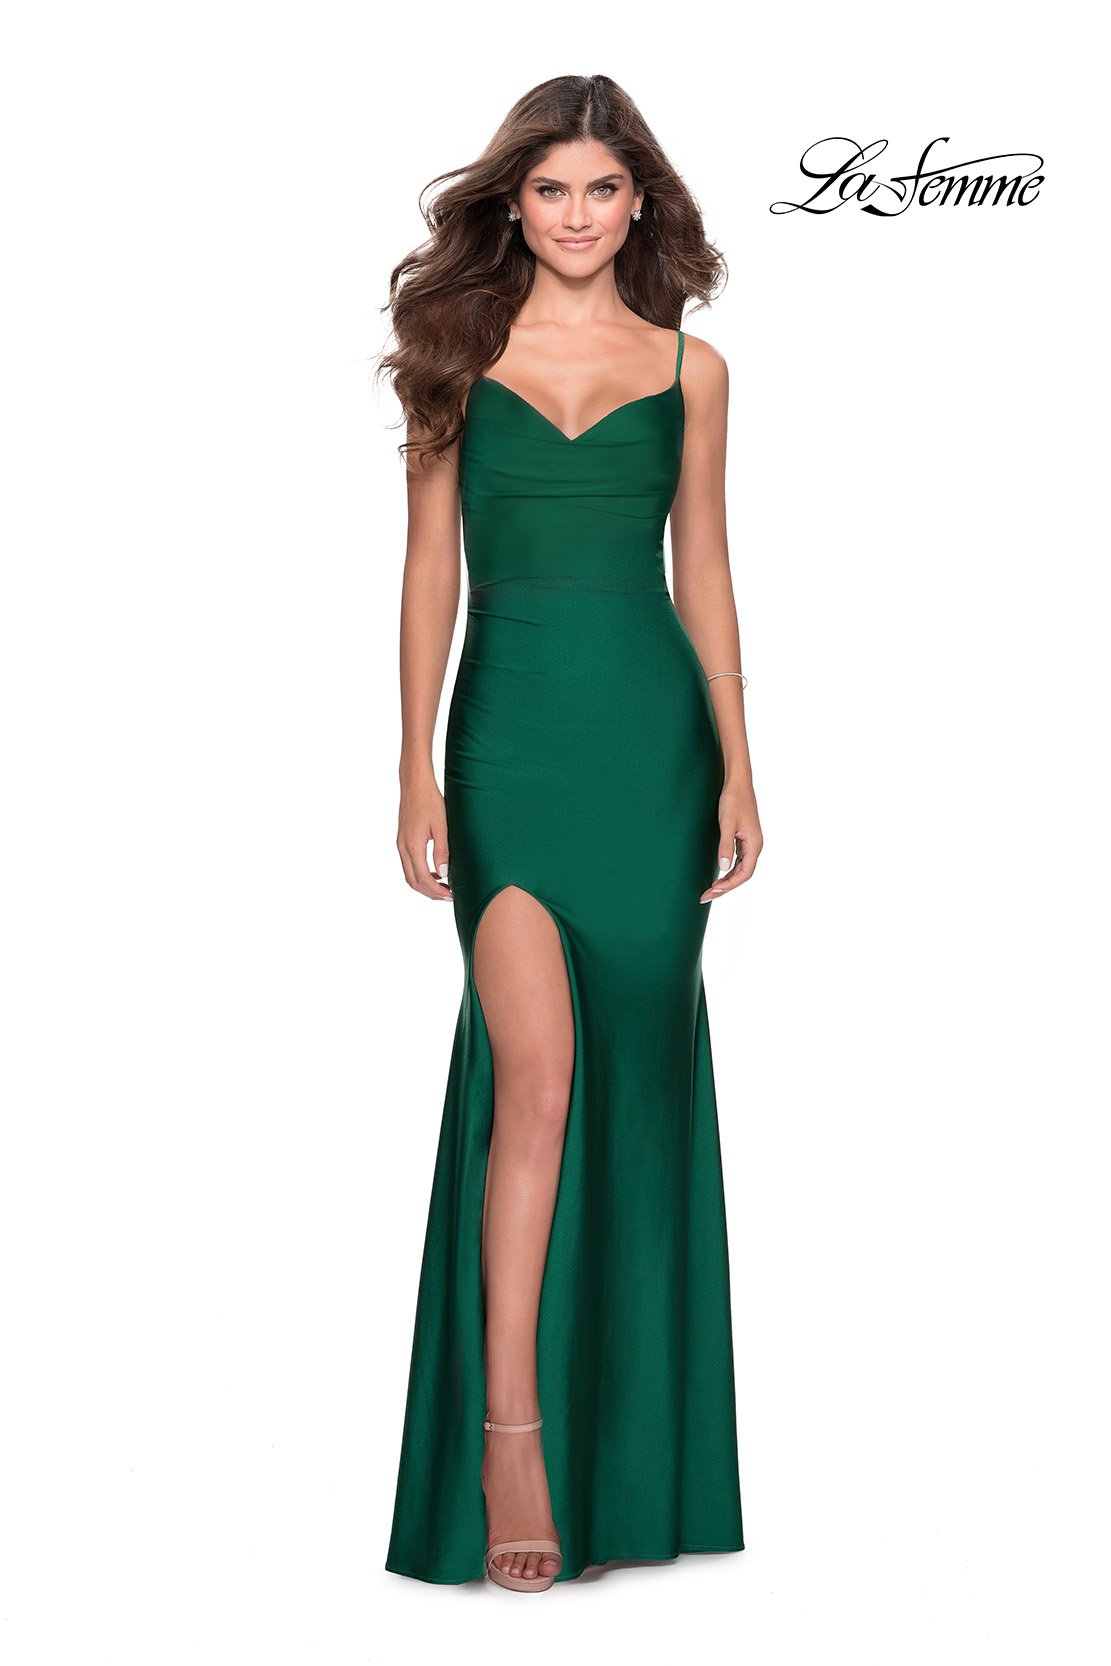 La Femme 28518 prom dress images.  La Femme 28518 is available in these colors: Black, Burgundy, Emerald, Mauve, Navy.